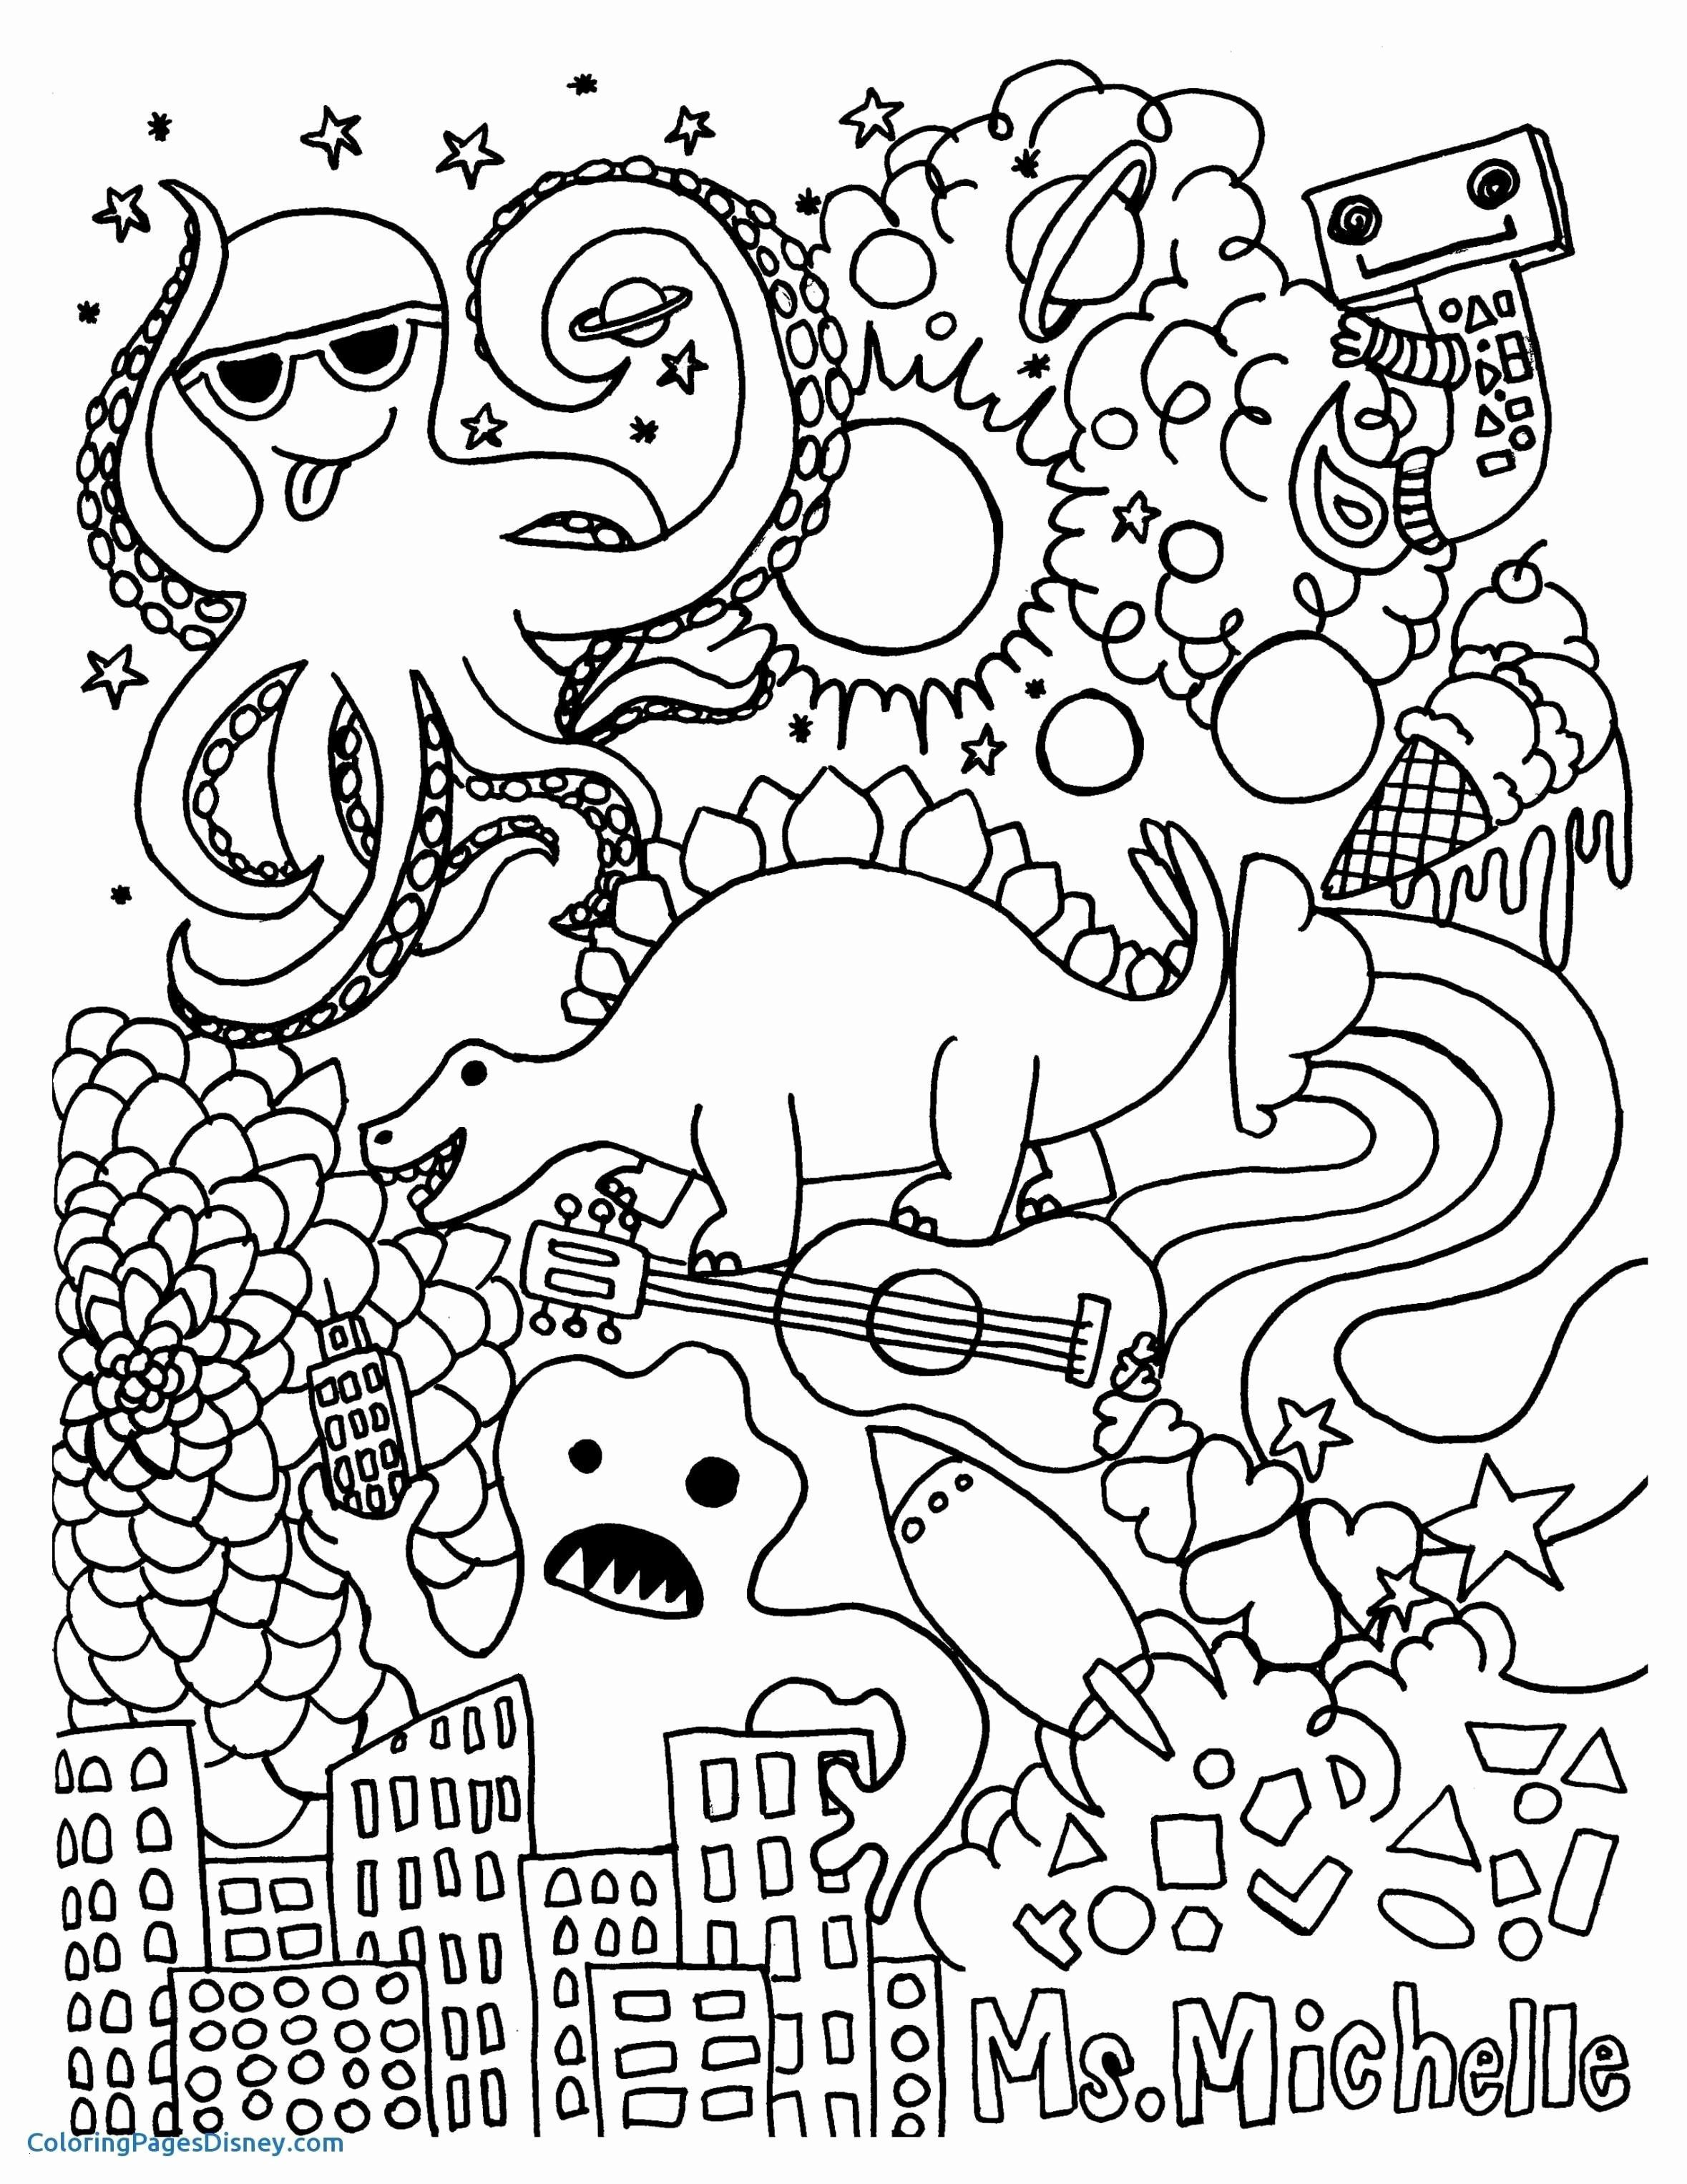 50+ Disney coloring pages for adults pdf ideas